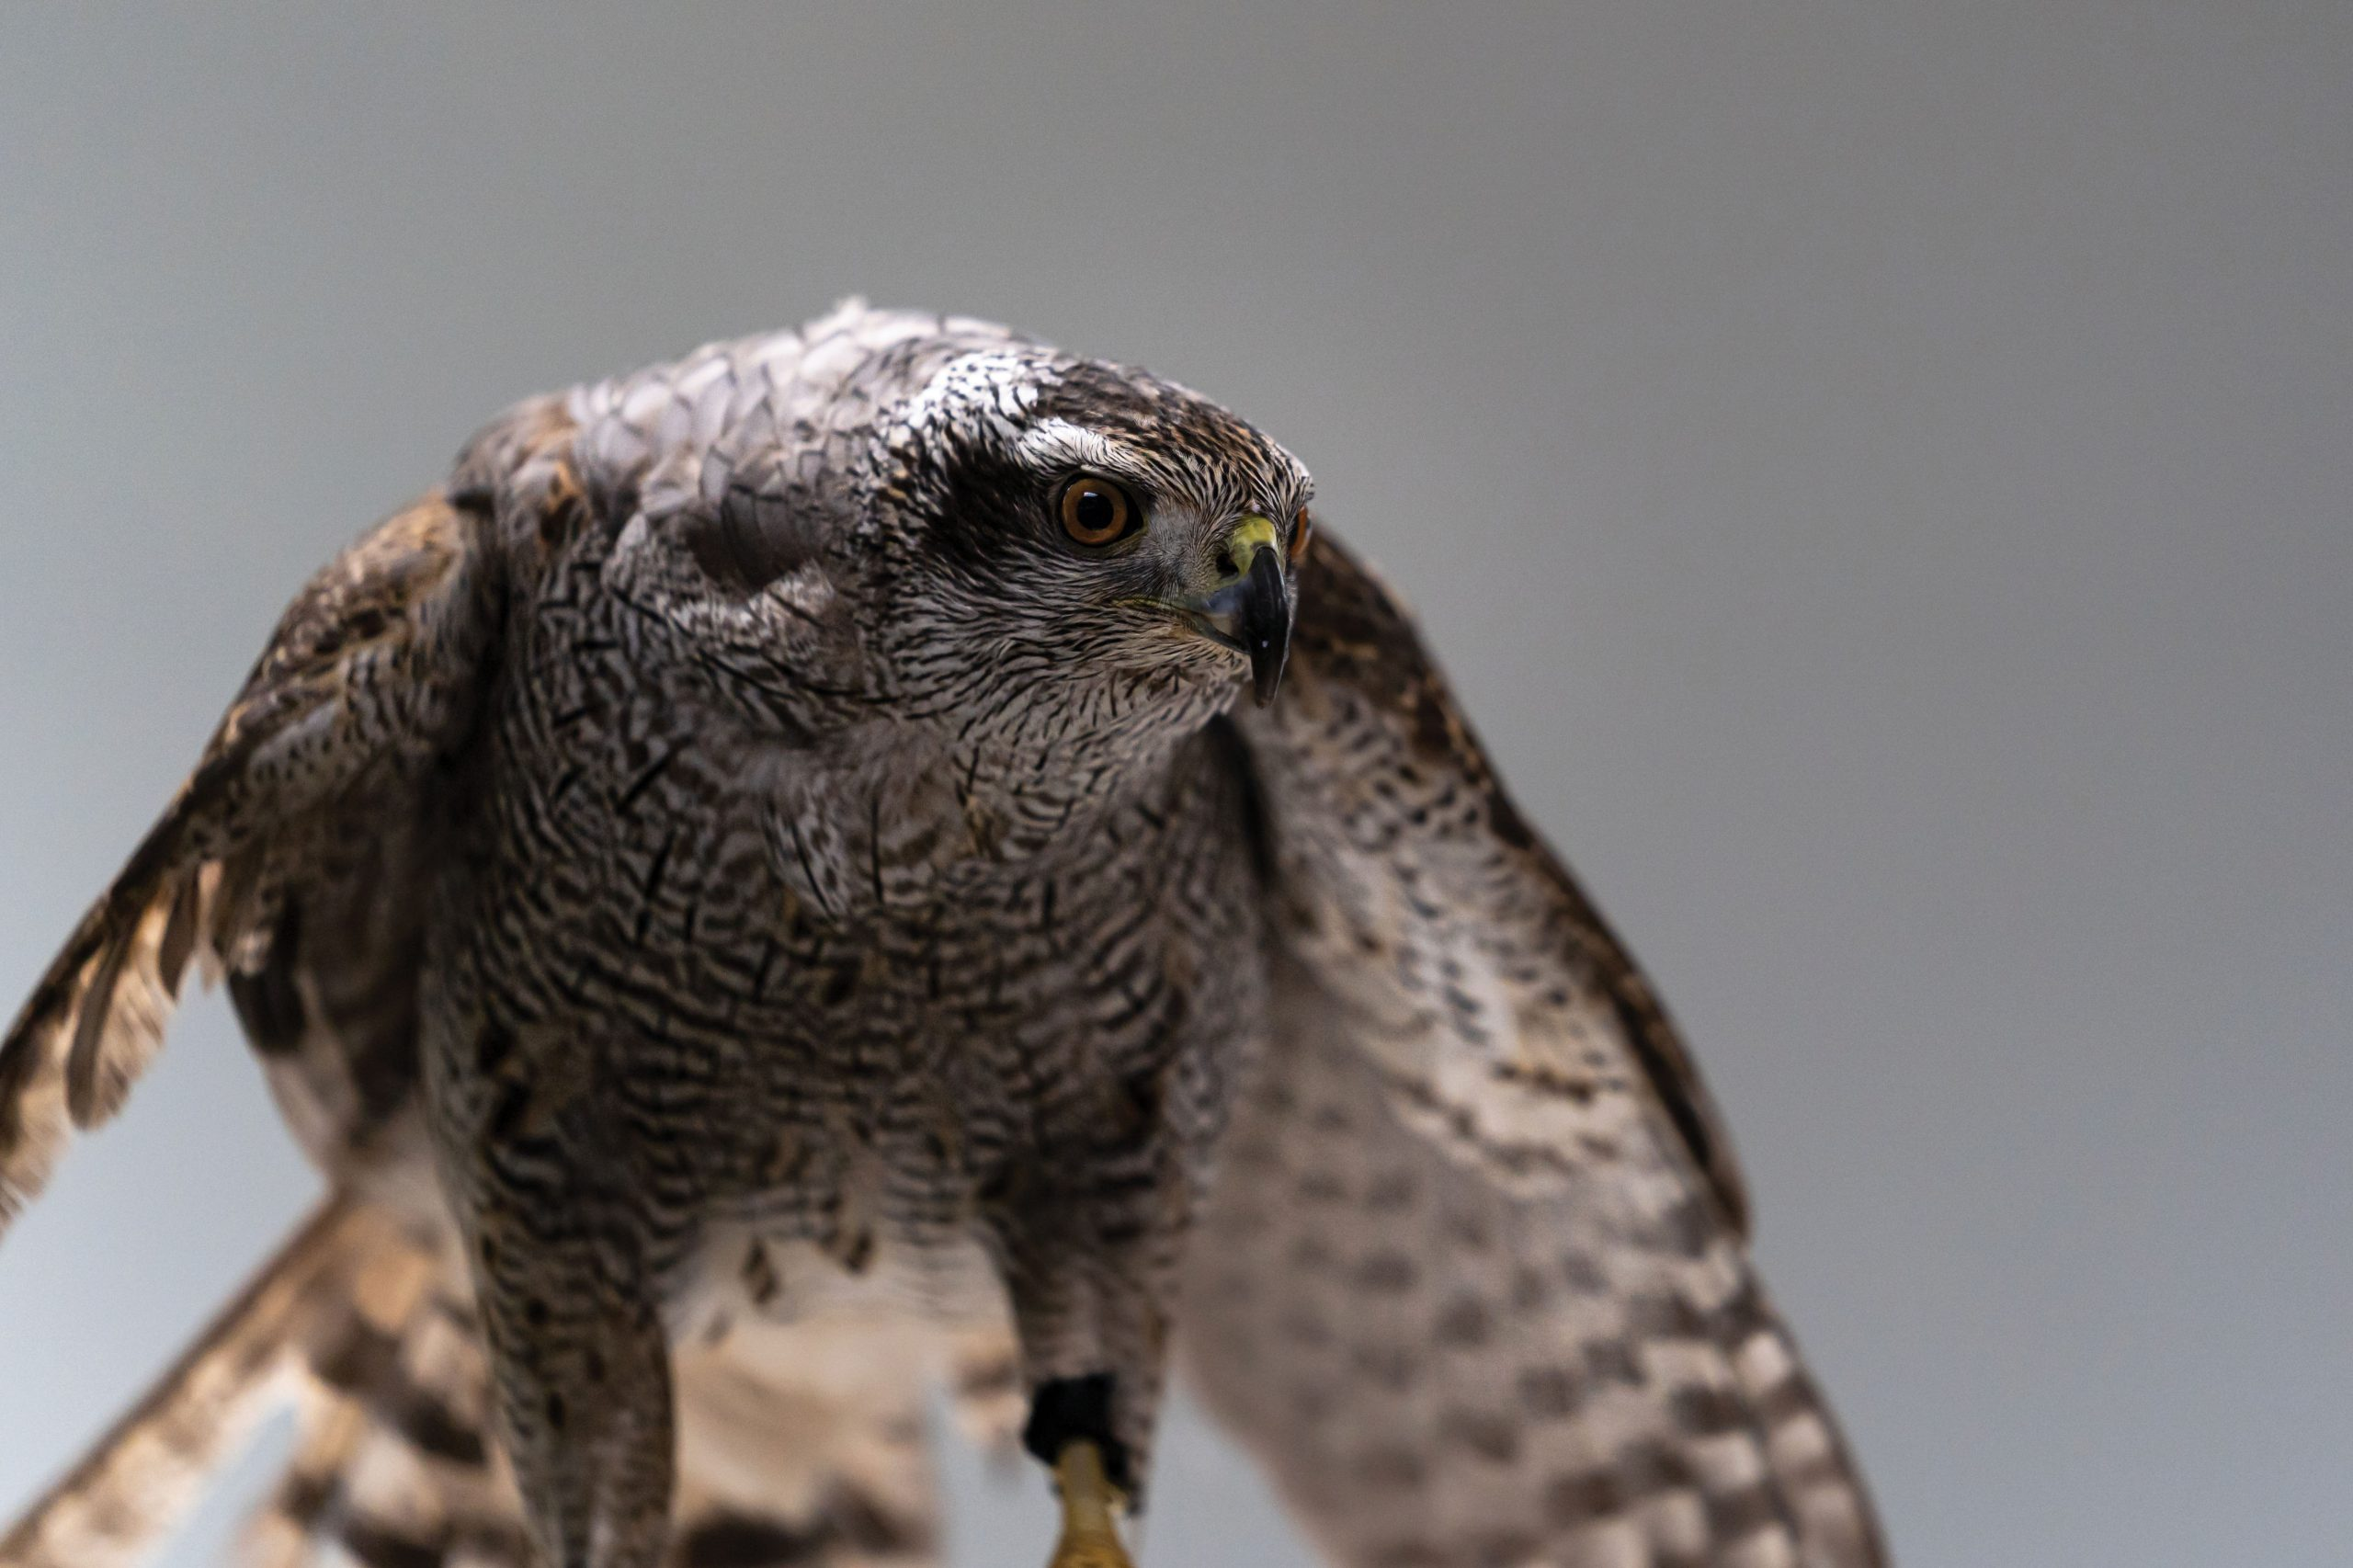 A Northern Goshawk with a broken wing receives treatment at the Alaska Raptor Center in Sitka, Alaska. Rehabilitation centers across North America help birds of prey recover from collisions with vehicles and power lines, lead poisoning, gunshot wounds, and many other injuries and ailments. Photo by Stephen James Burke/Shutterstock